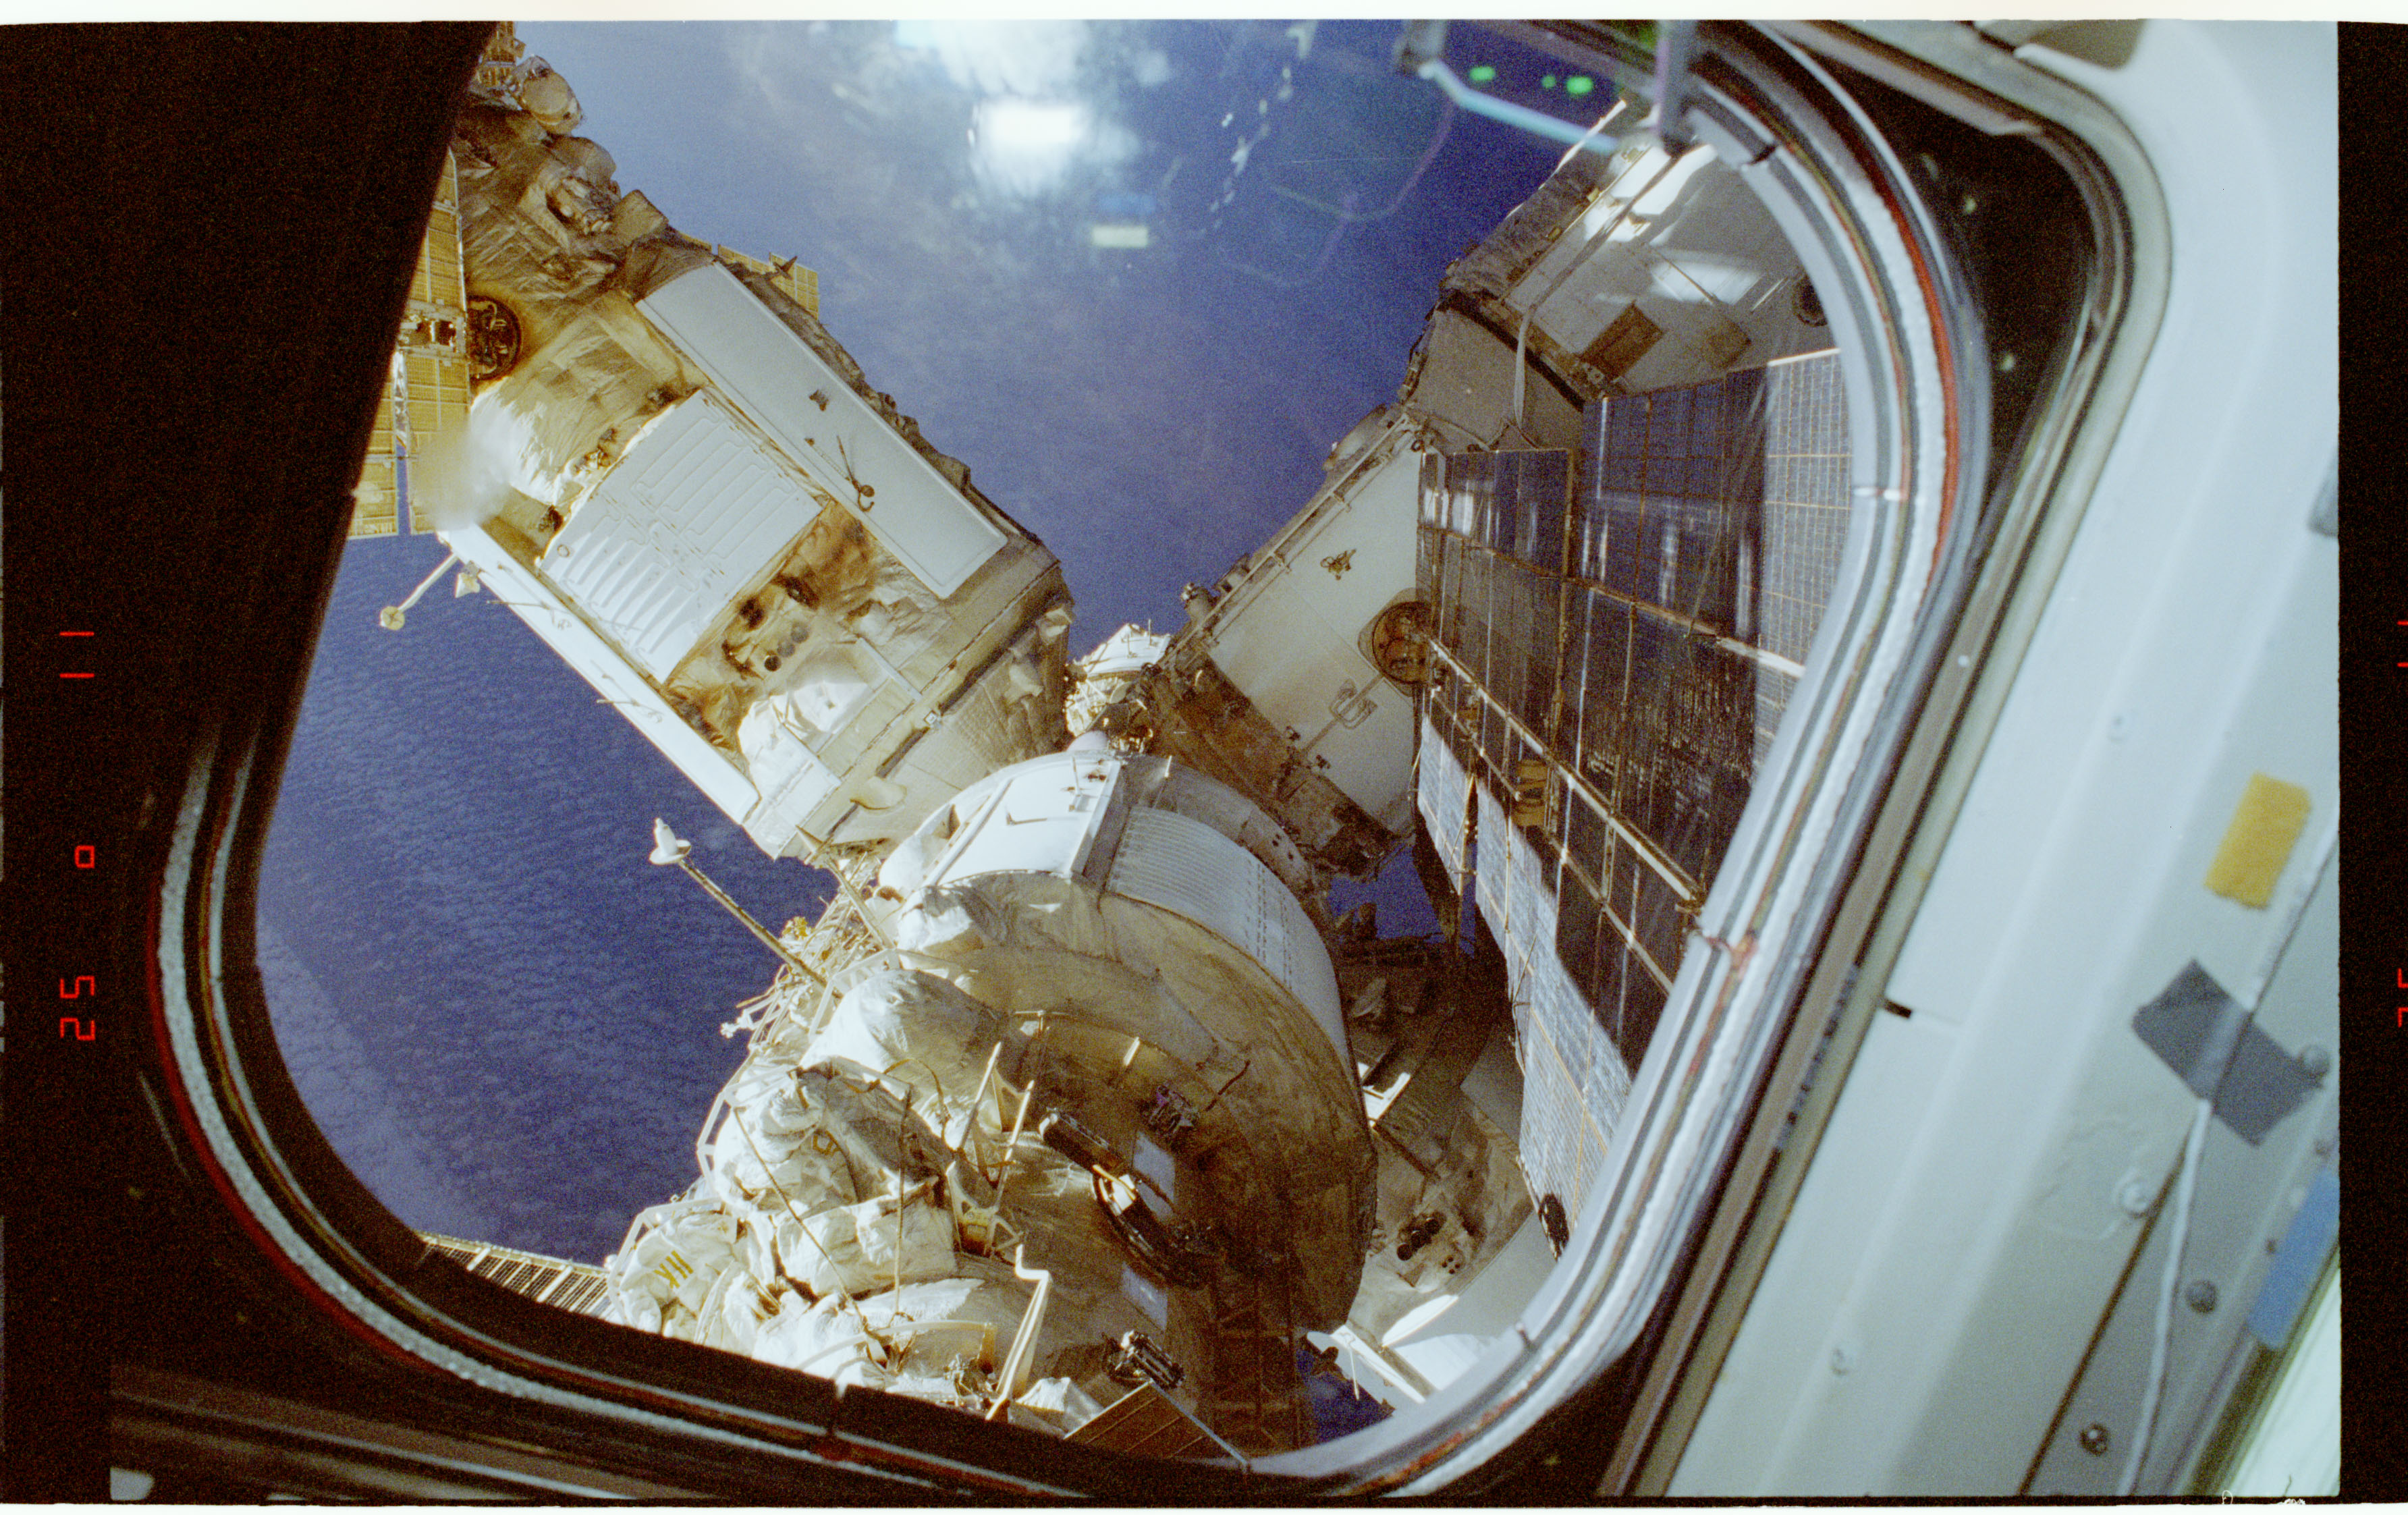 STS084-357-026 - STS-084 - View of the Mir Space Station during docked operations